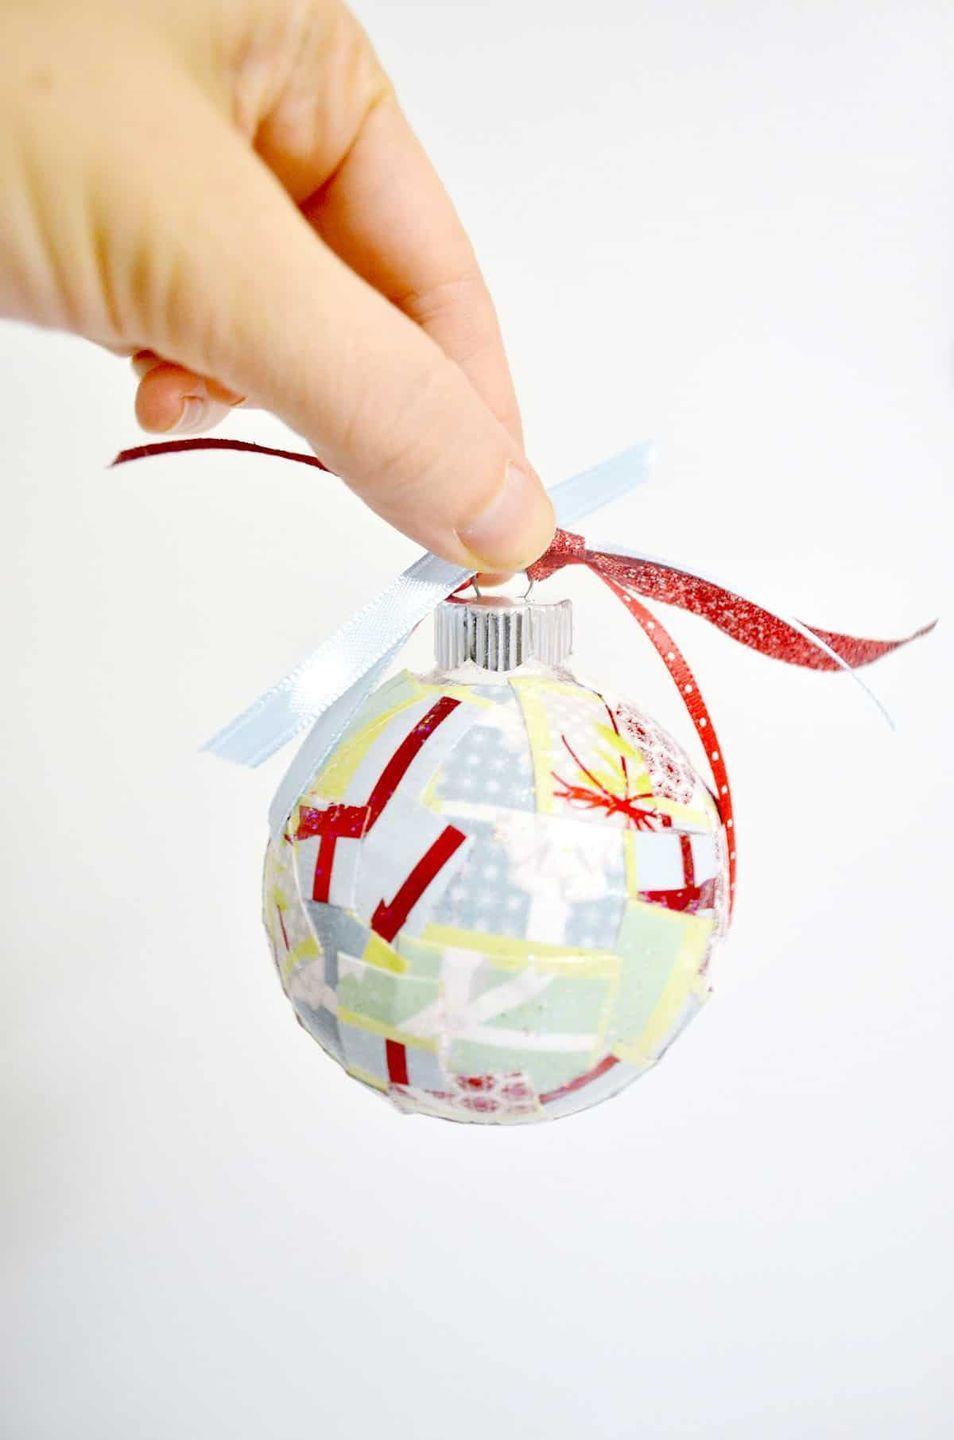 """<p>If you're trying to be more sustainable this holiday season, look no further—these DIY ornaments take all of your holiday wrapping scraps and turn them into something you'll use for years to come.</p><p>Get the tutorial at <a href=""""https://modpodgerocksblog.com/easy-paper-scrap-diy-christmas-ornaments/"""" rel=""""nofollow noopener"""" target=""""_blank"""" data-ylk=""""slk:Modge Podge Rocks"""" class=""""link rapid-noclick-resp"""">Modge Podge Rocks</a>.</p>"""